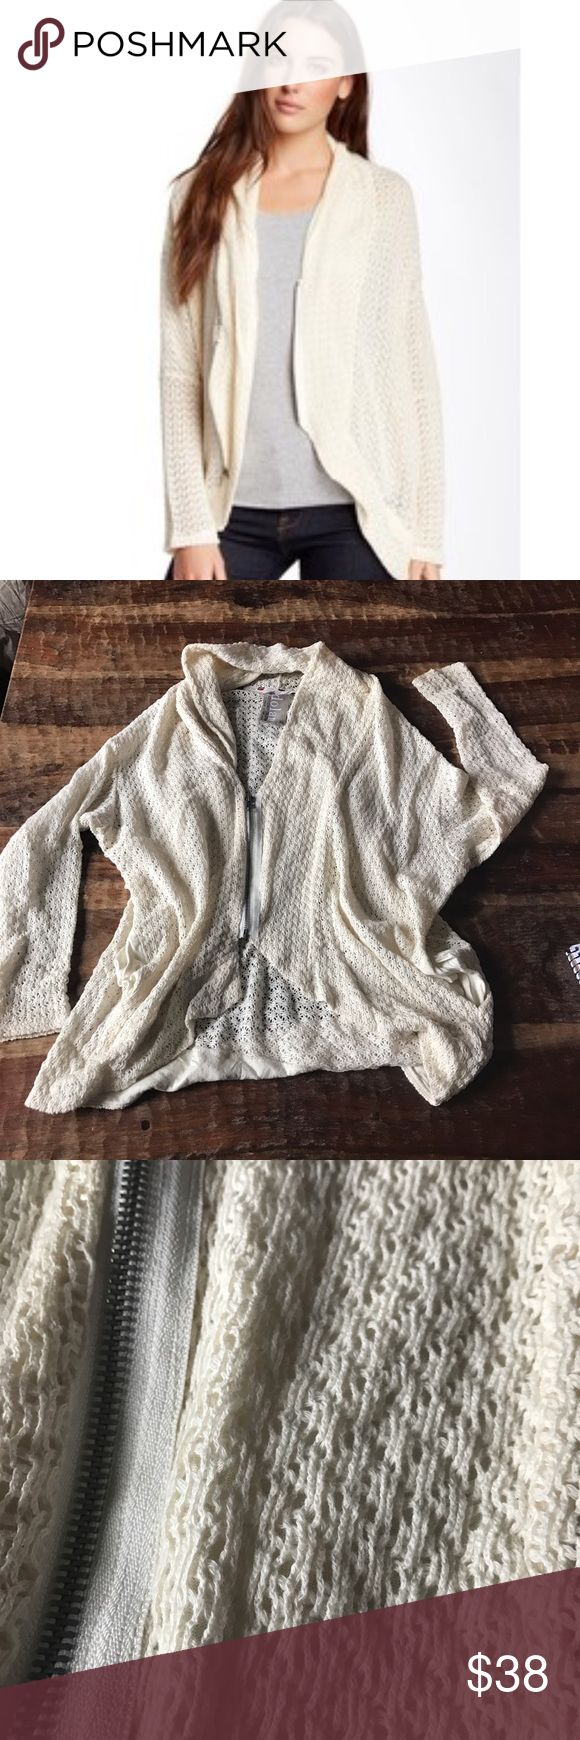 """Dolan Crocheted Zip Up Cardigan Super cute cocoon style Cardigan in excellent condition. Has a loose fit. Chest is 24"""" across laying flat bf flat, and length is 18"""" in the front and 25"""" in the back. Anthropologie Sweaters Cardigans"""